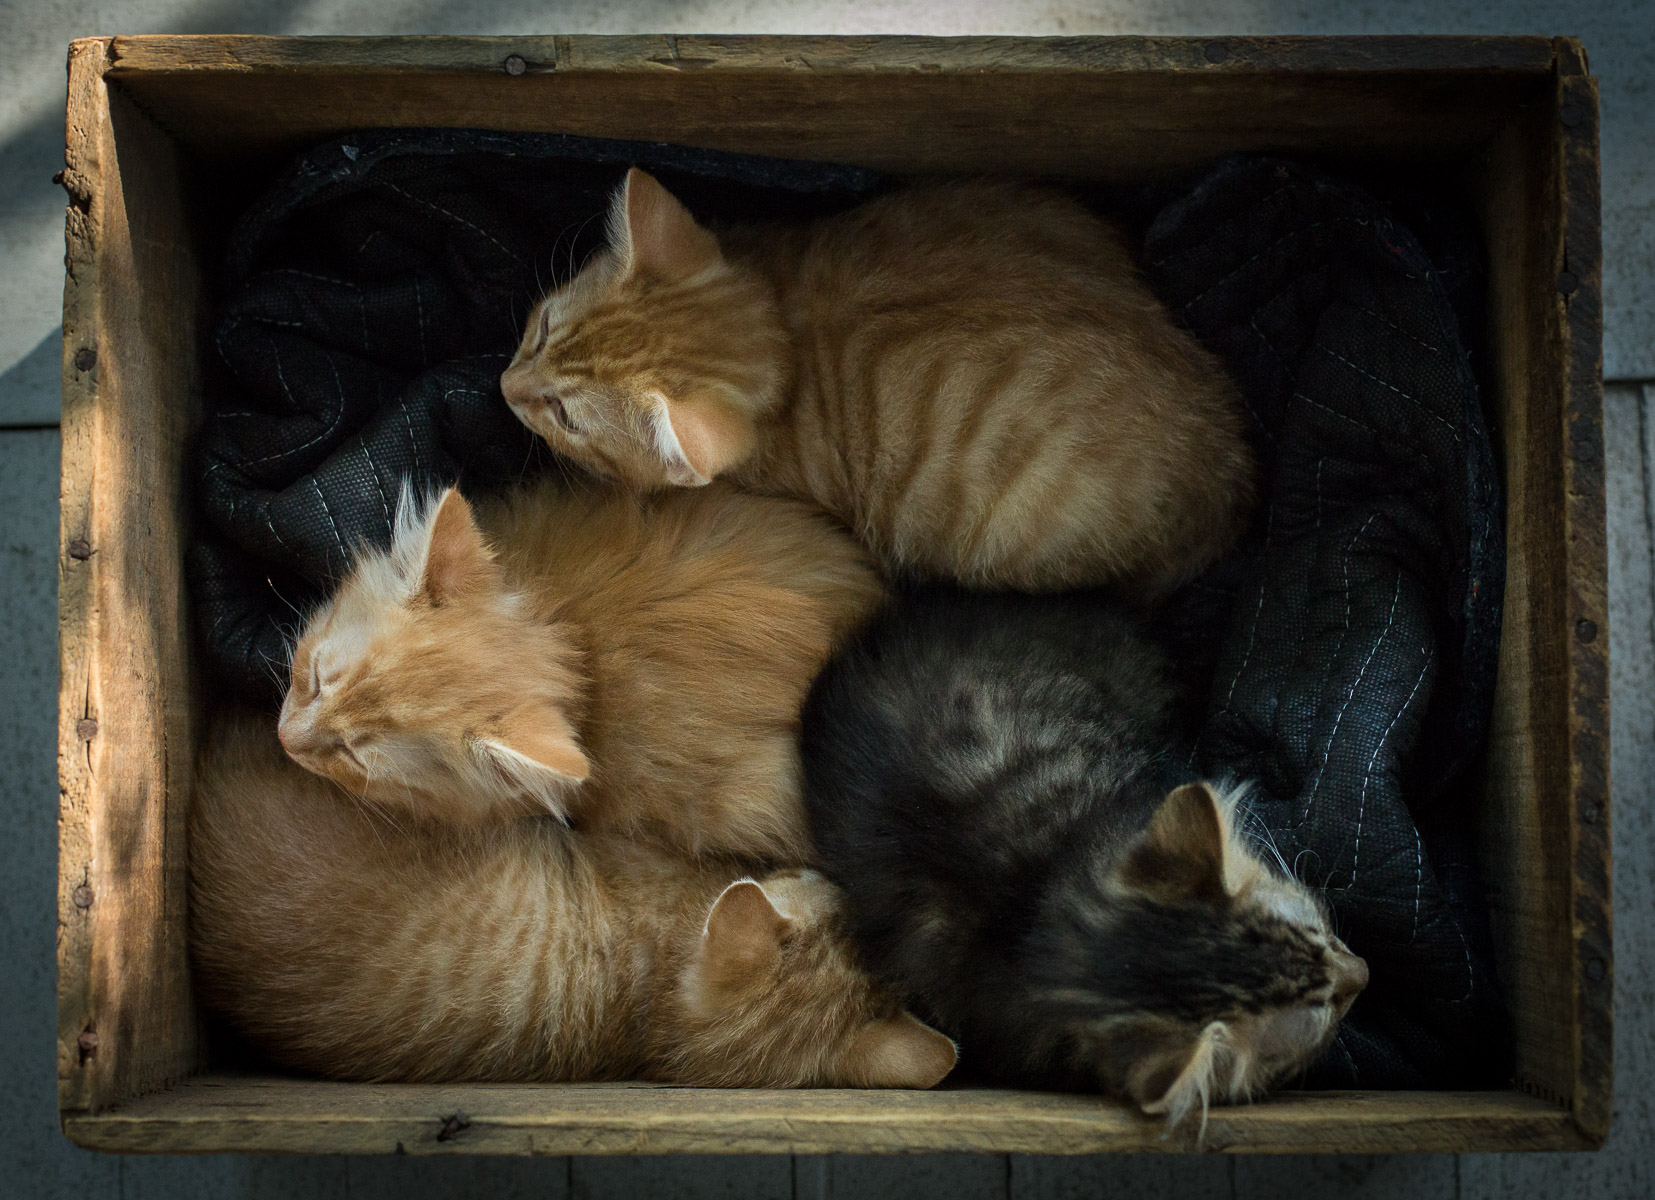 box-with-cat-litter-baby-cats-animal-photographer.jpg